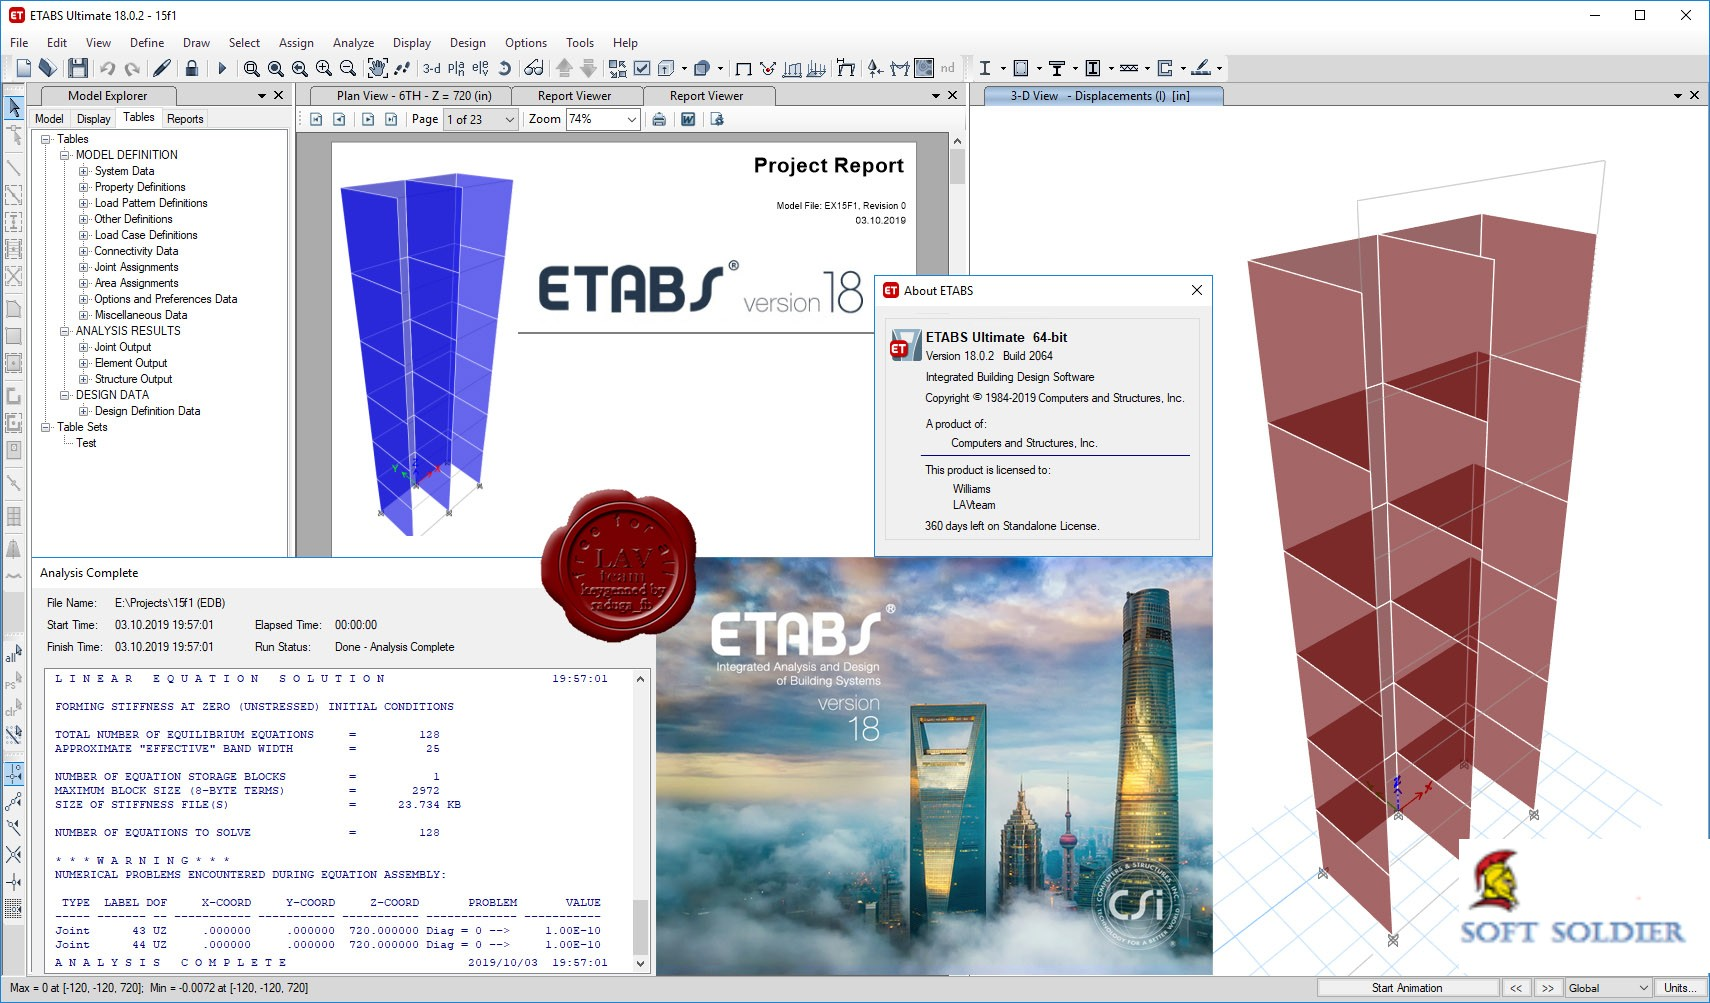 CSI ETABS Ultimate 18.0